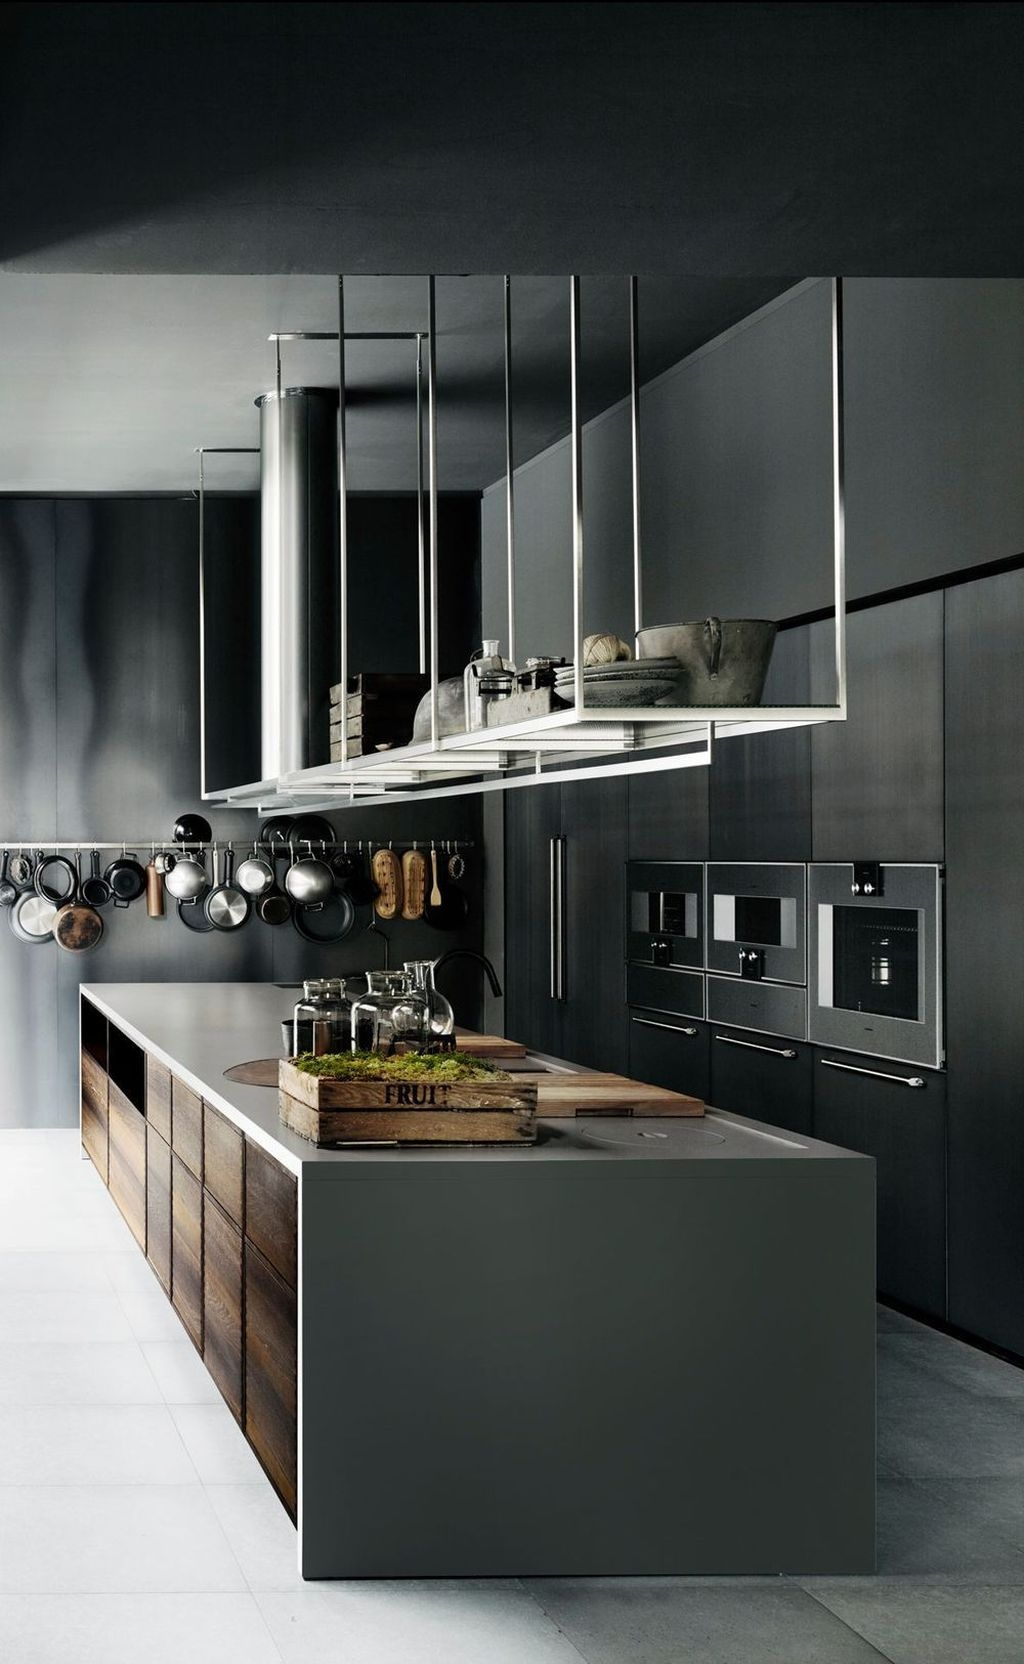 Black Kitchen Design Ideas With White Color Accent 26